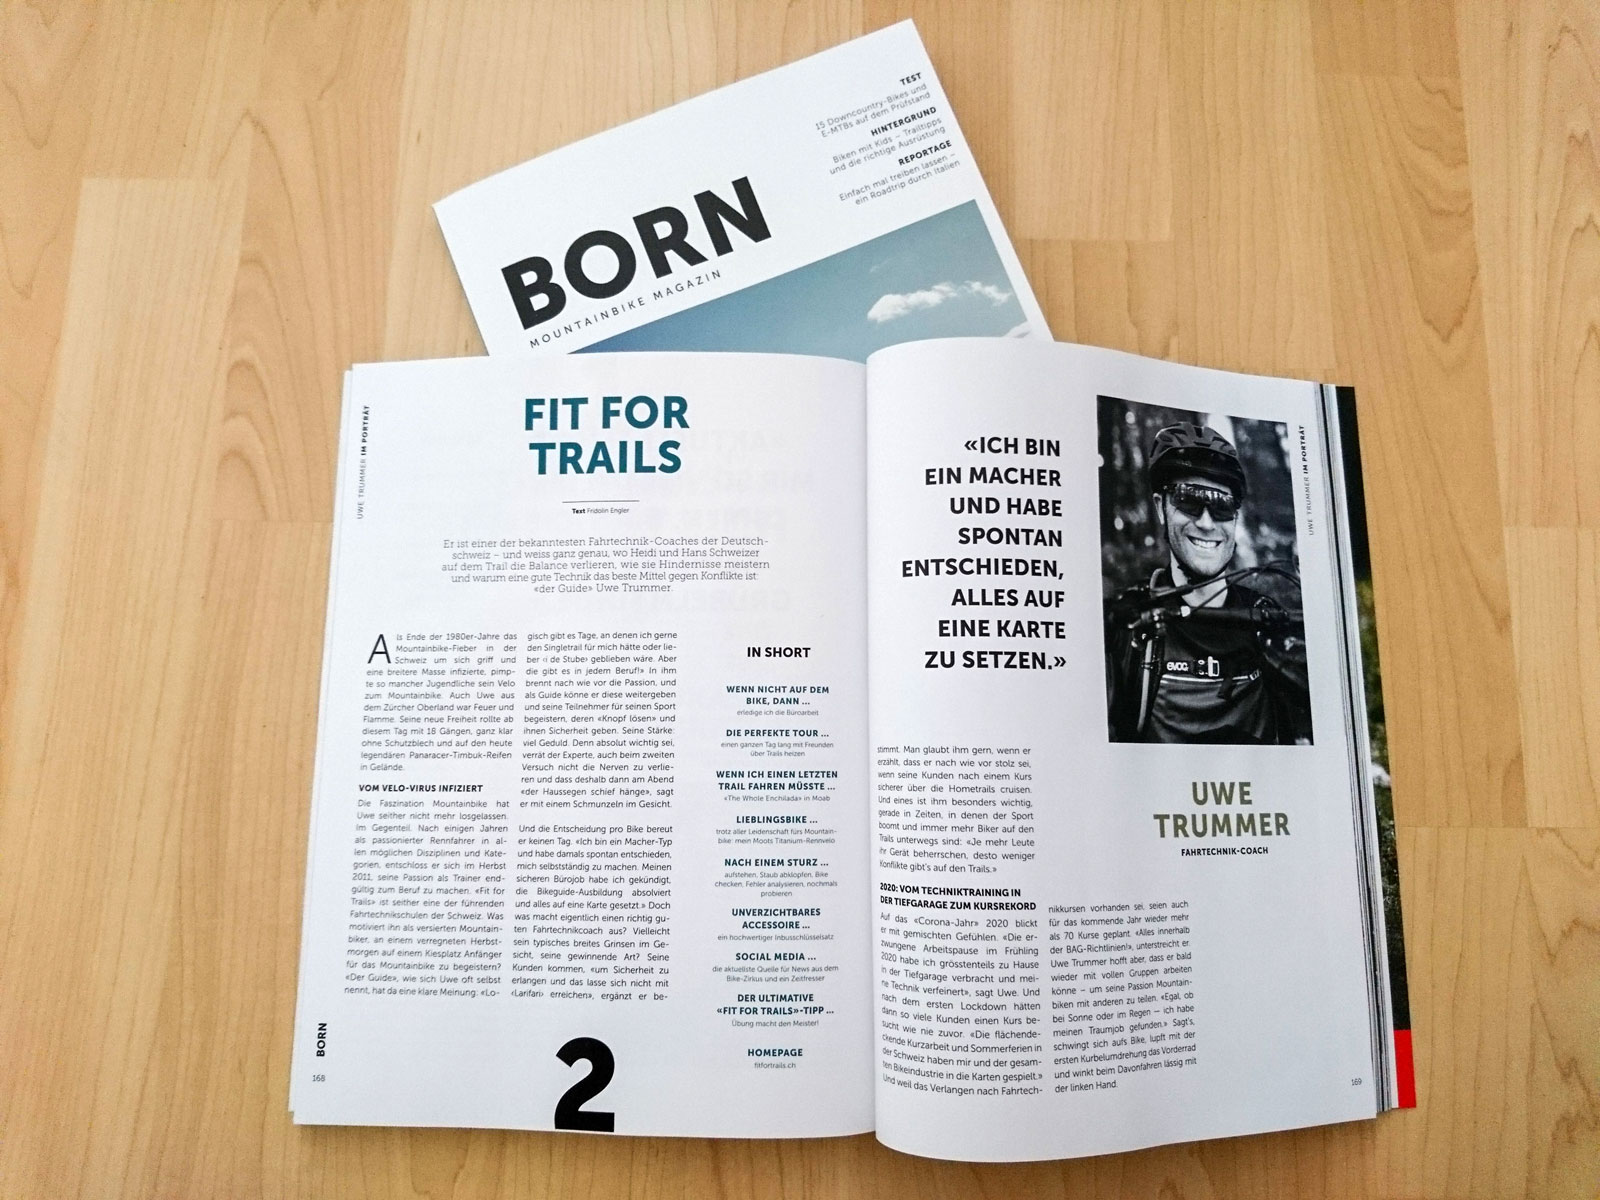 fifortrails_interview_bornmagazin